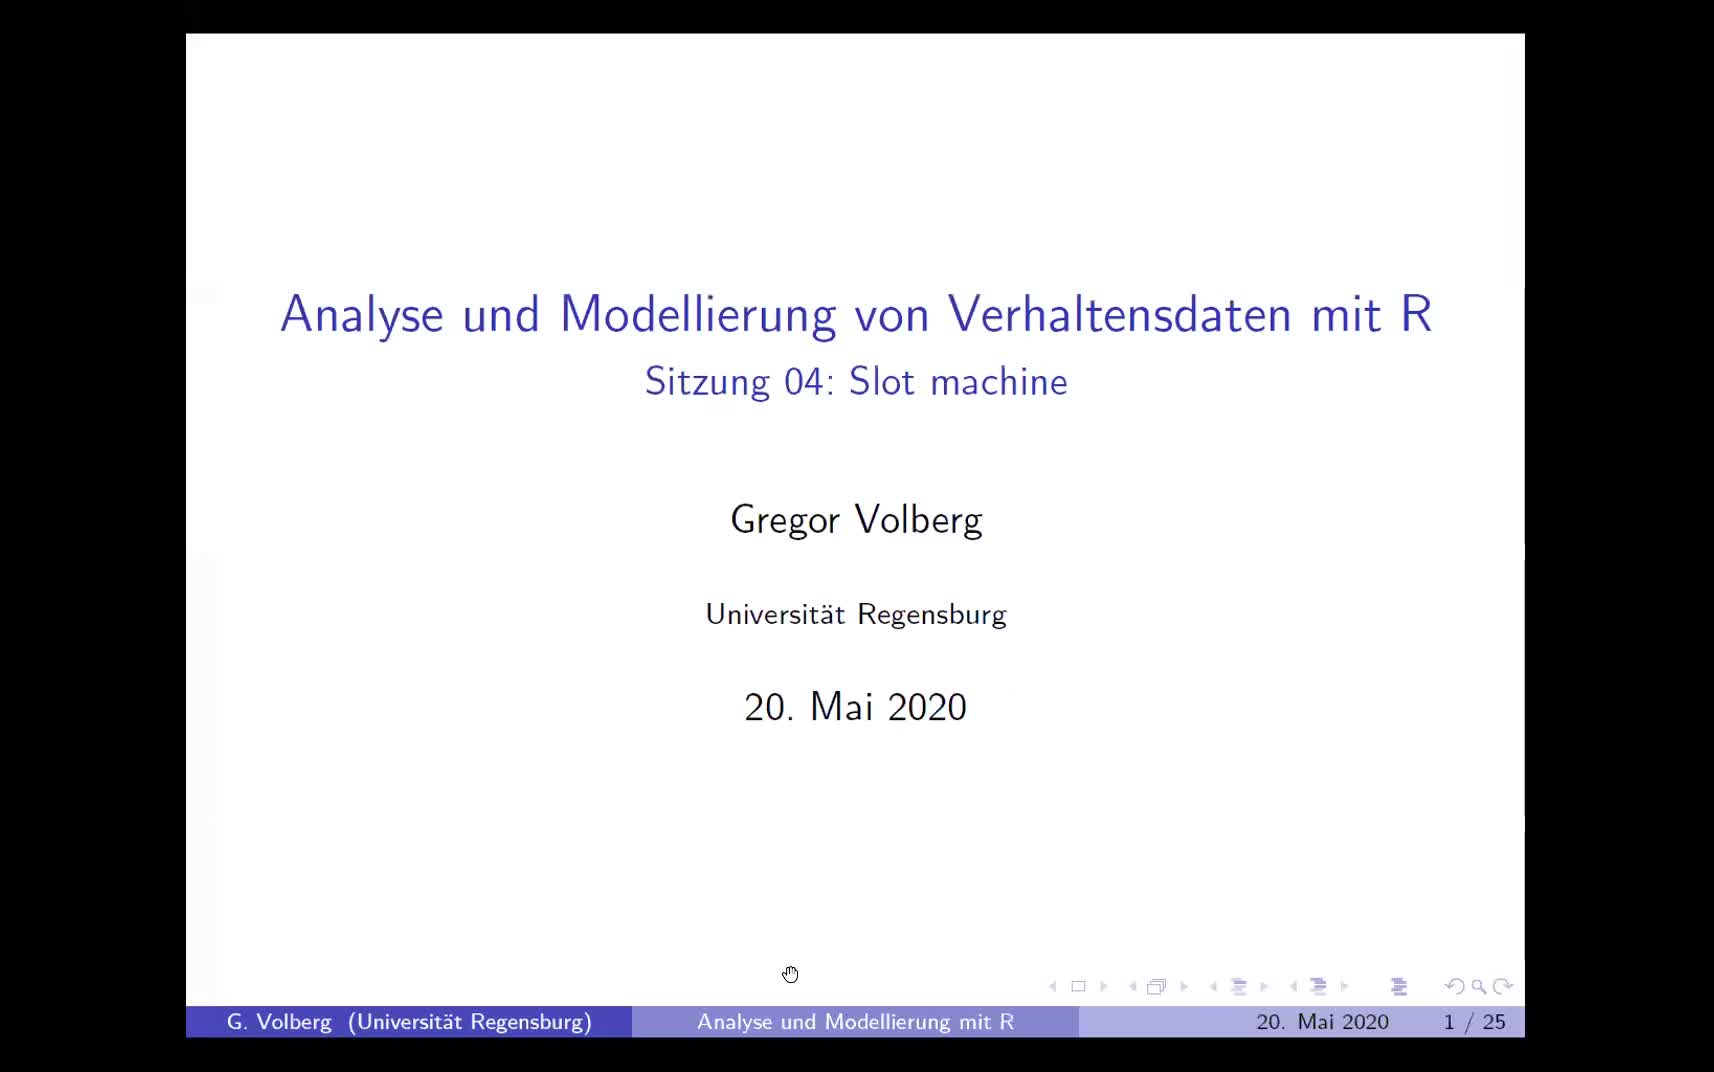 Sitzung 04: Zoom-Meeting